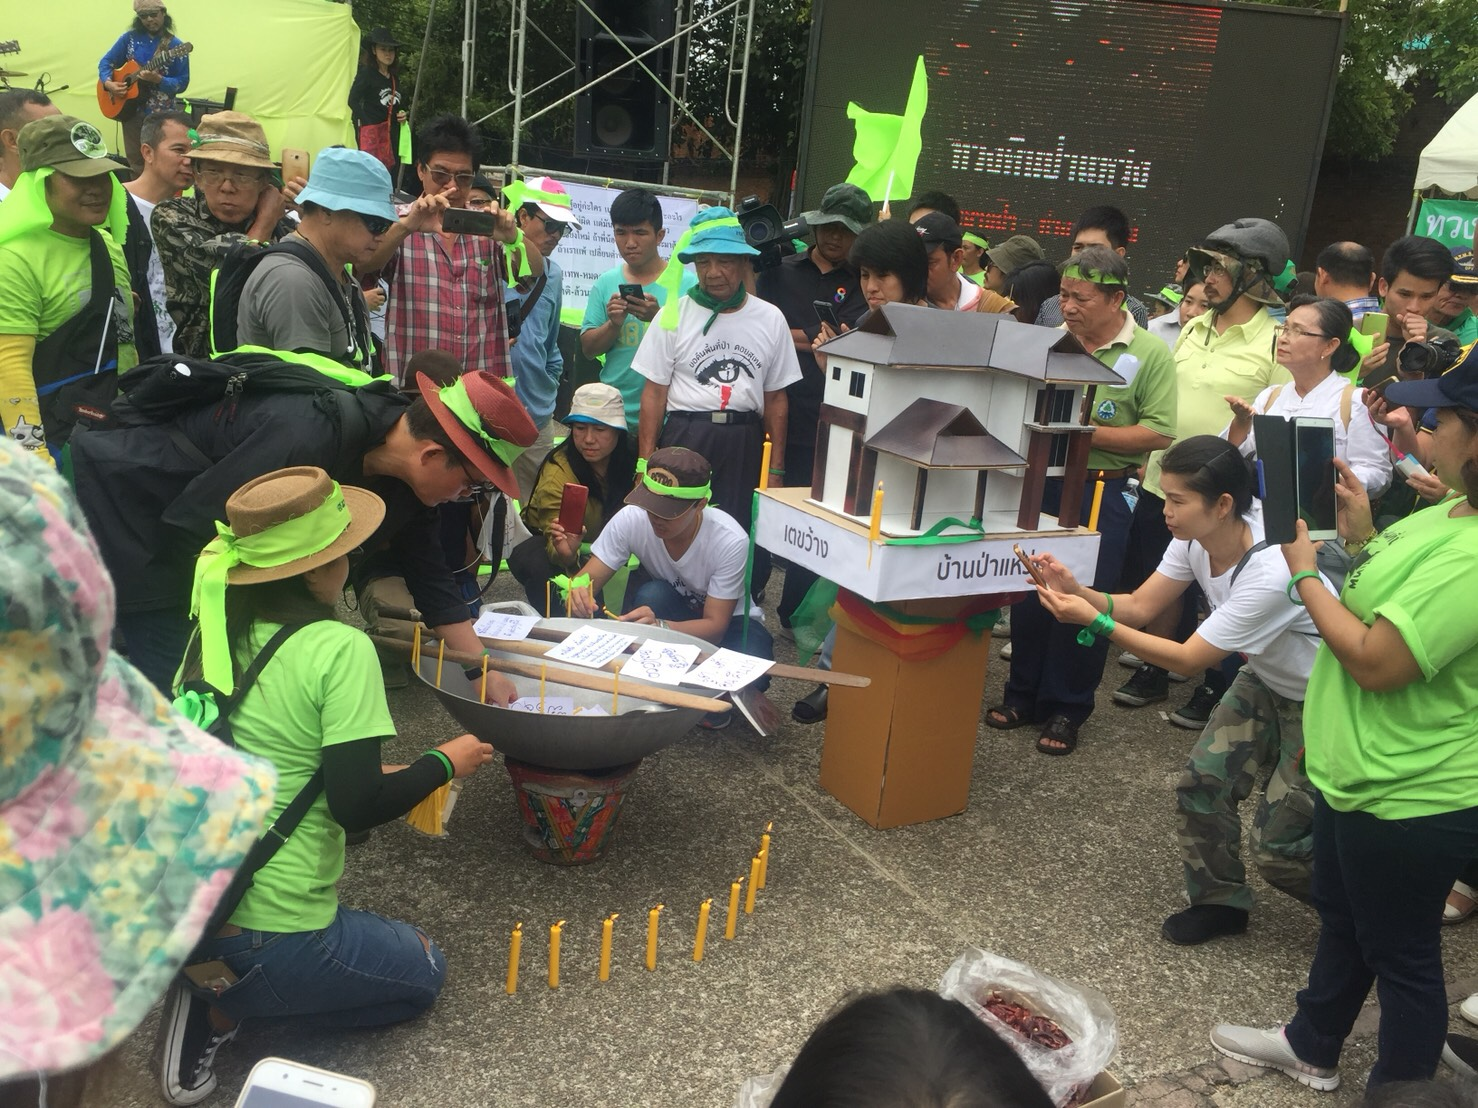 Anti-Doi Suthep housing project groups rally to pressure government 2 Live Music in Chiang Mai